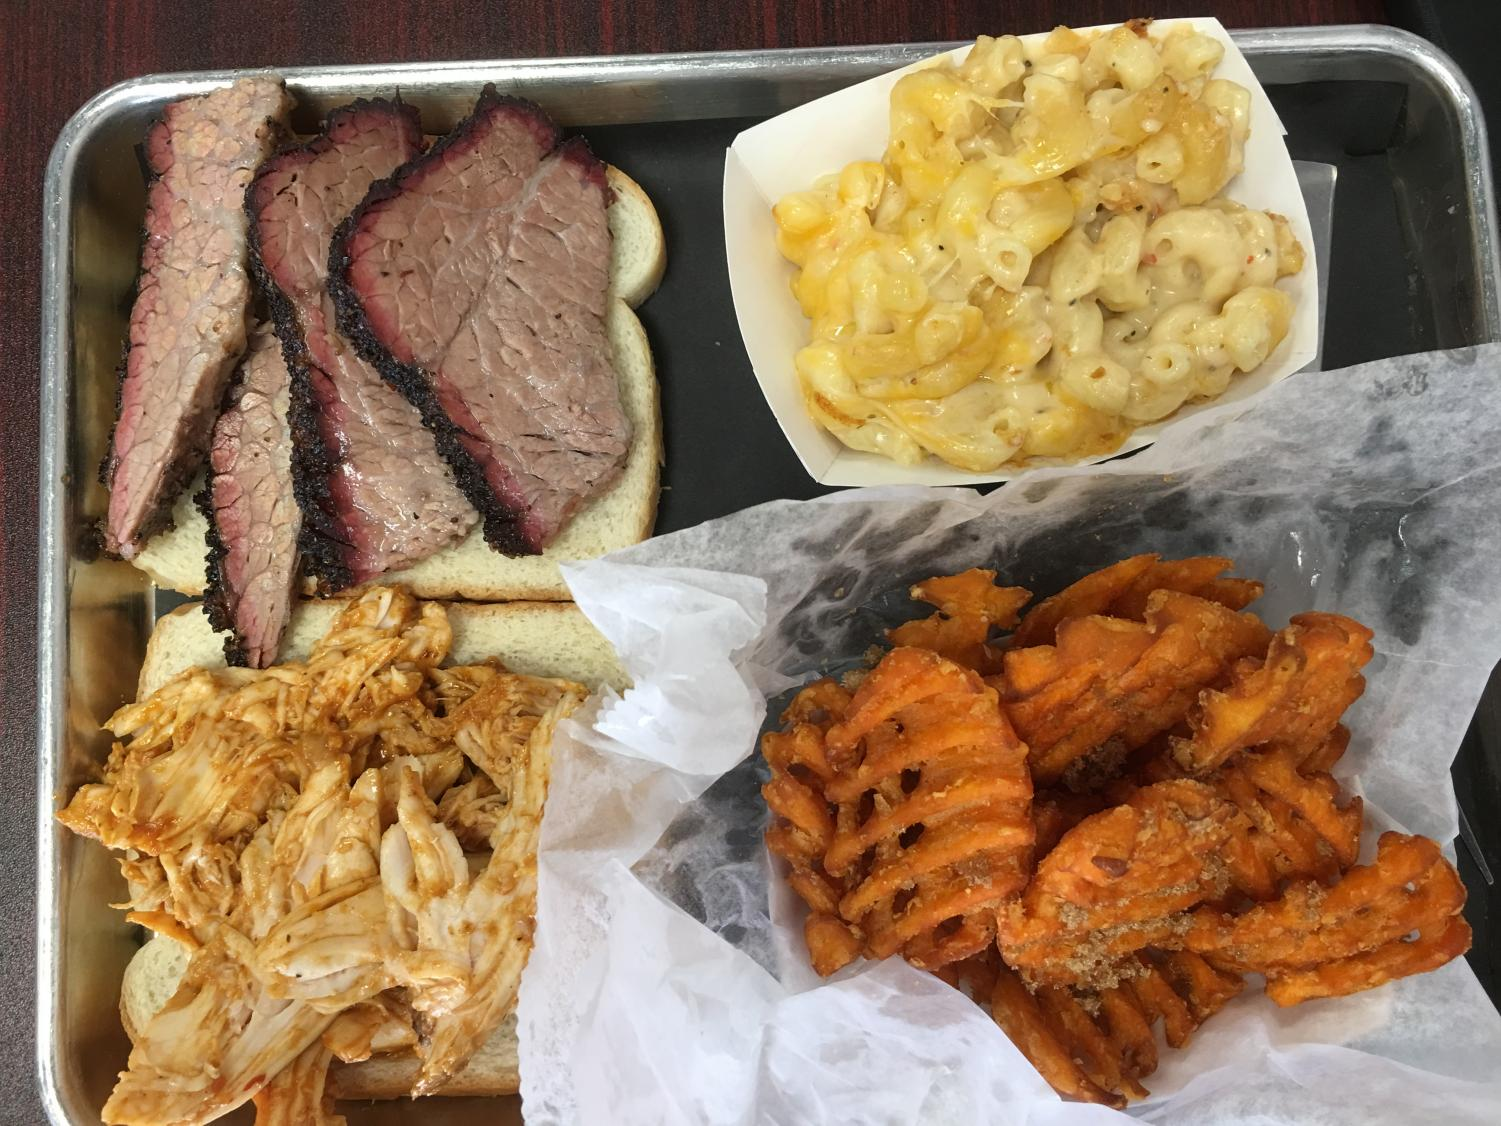 Cuisine expert Doug Bell takes a look at Smoke Daddy's in Lansdale.